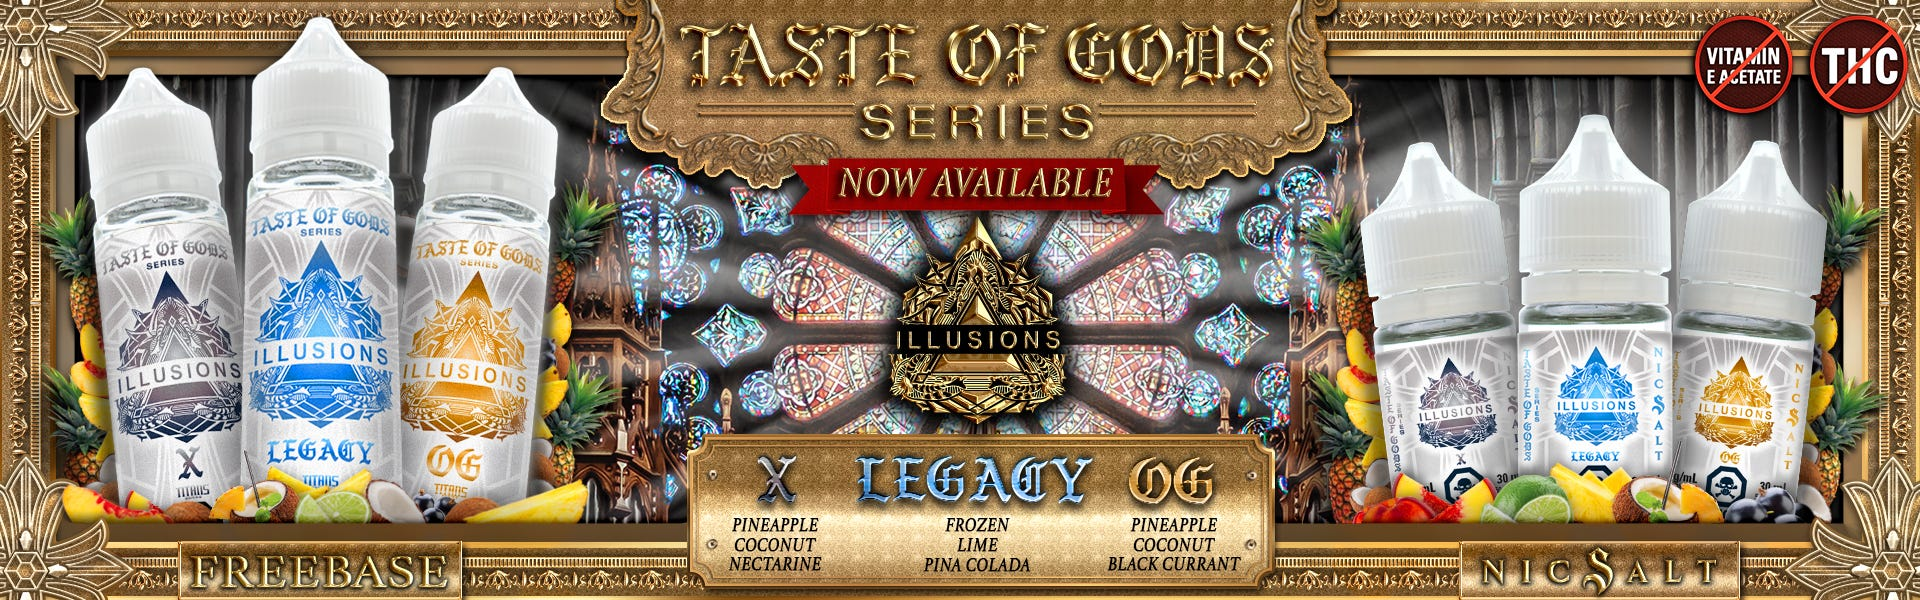 TOG Series PSI Website Banner Now Available